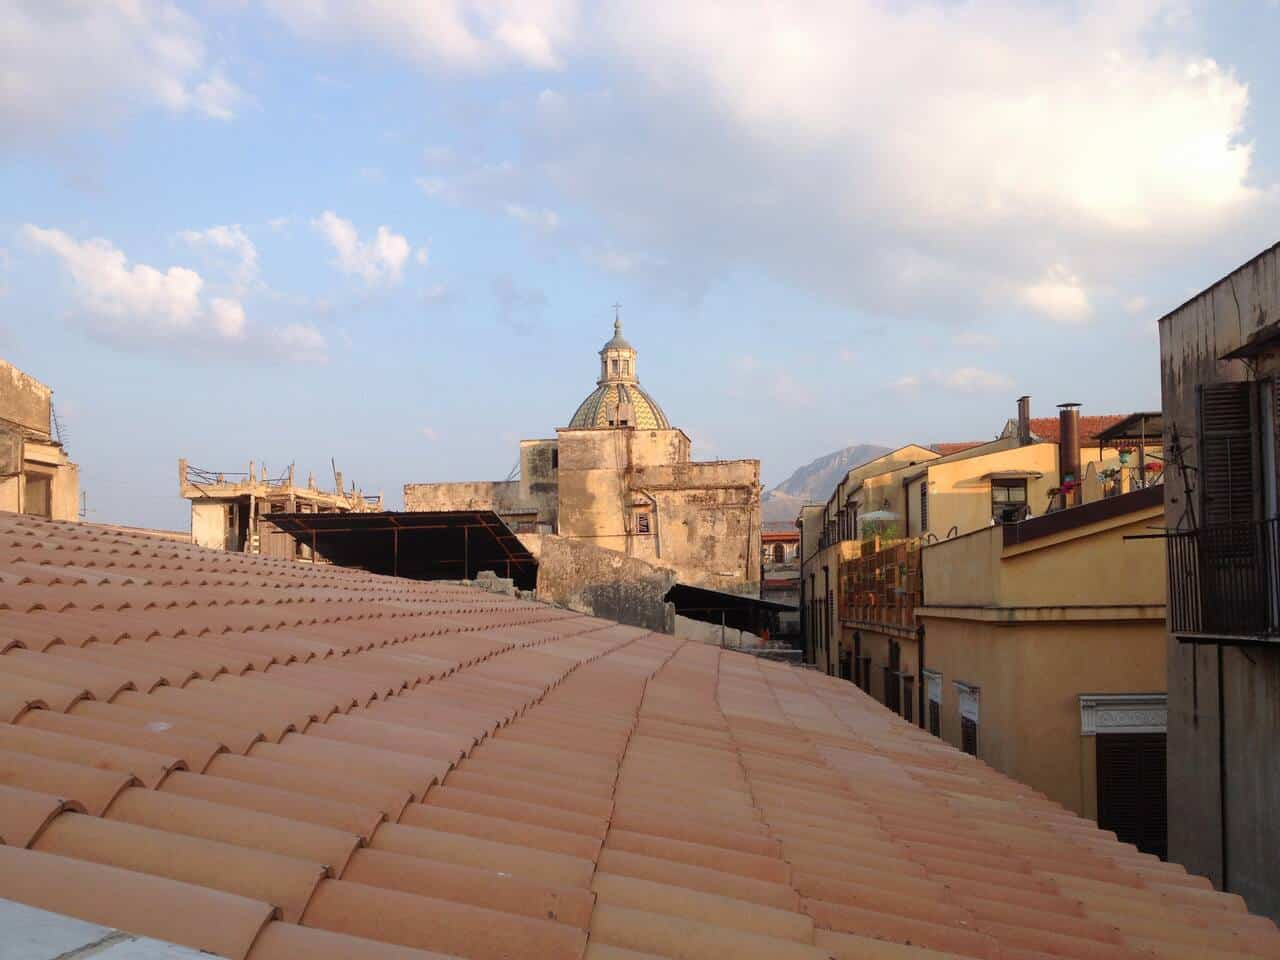 Image of Airbnb rental in Palermo, Italy